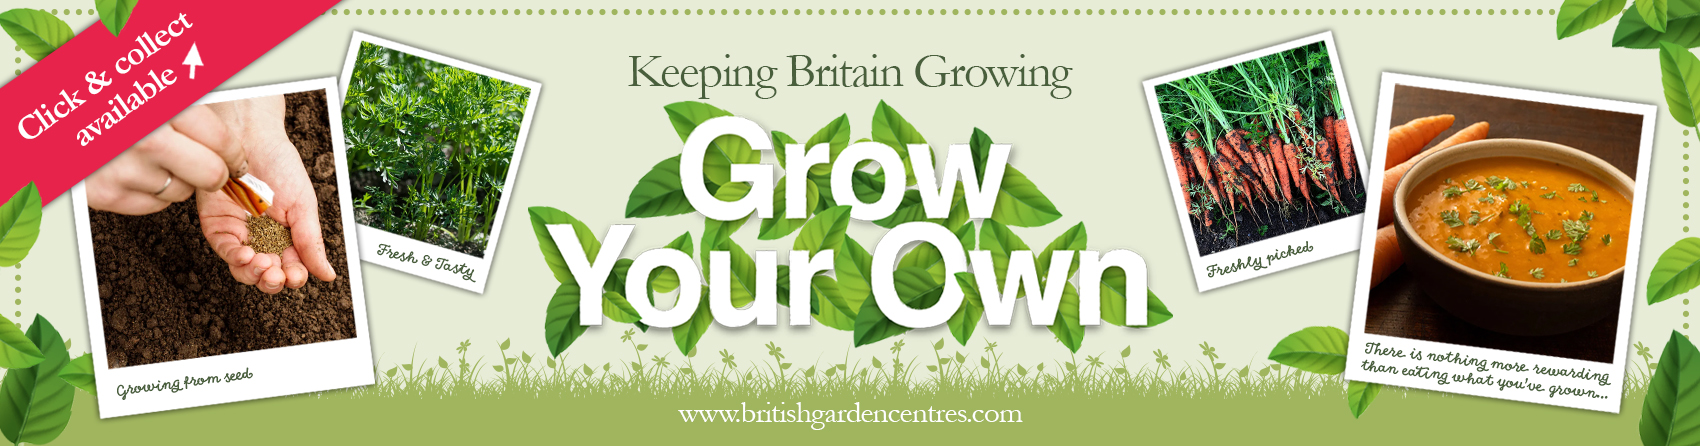 Grow your own - Carrots